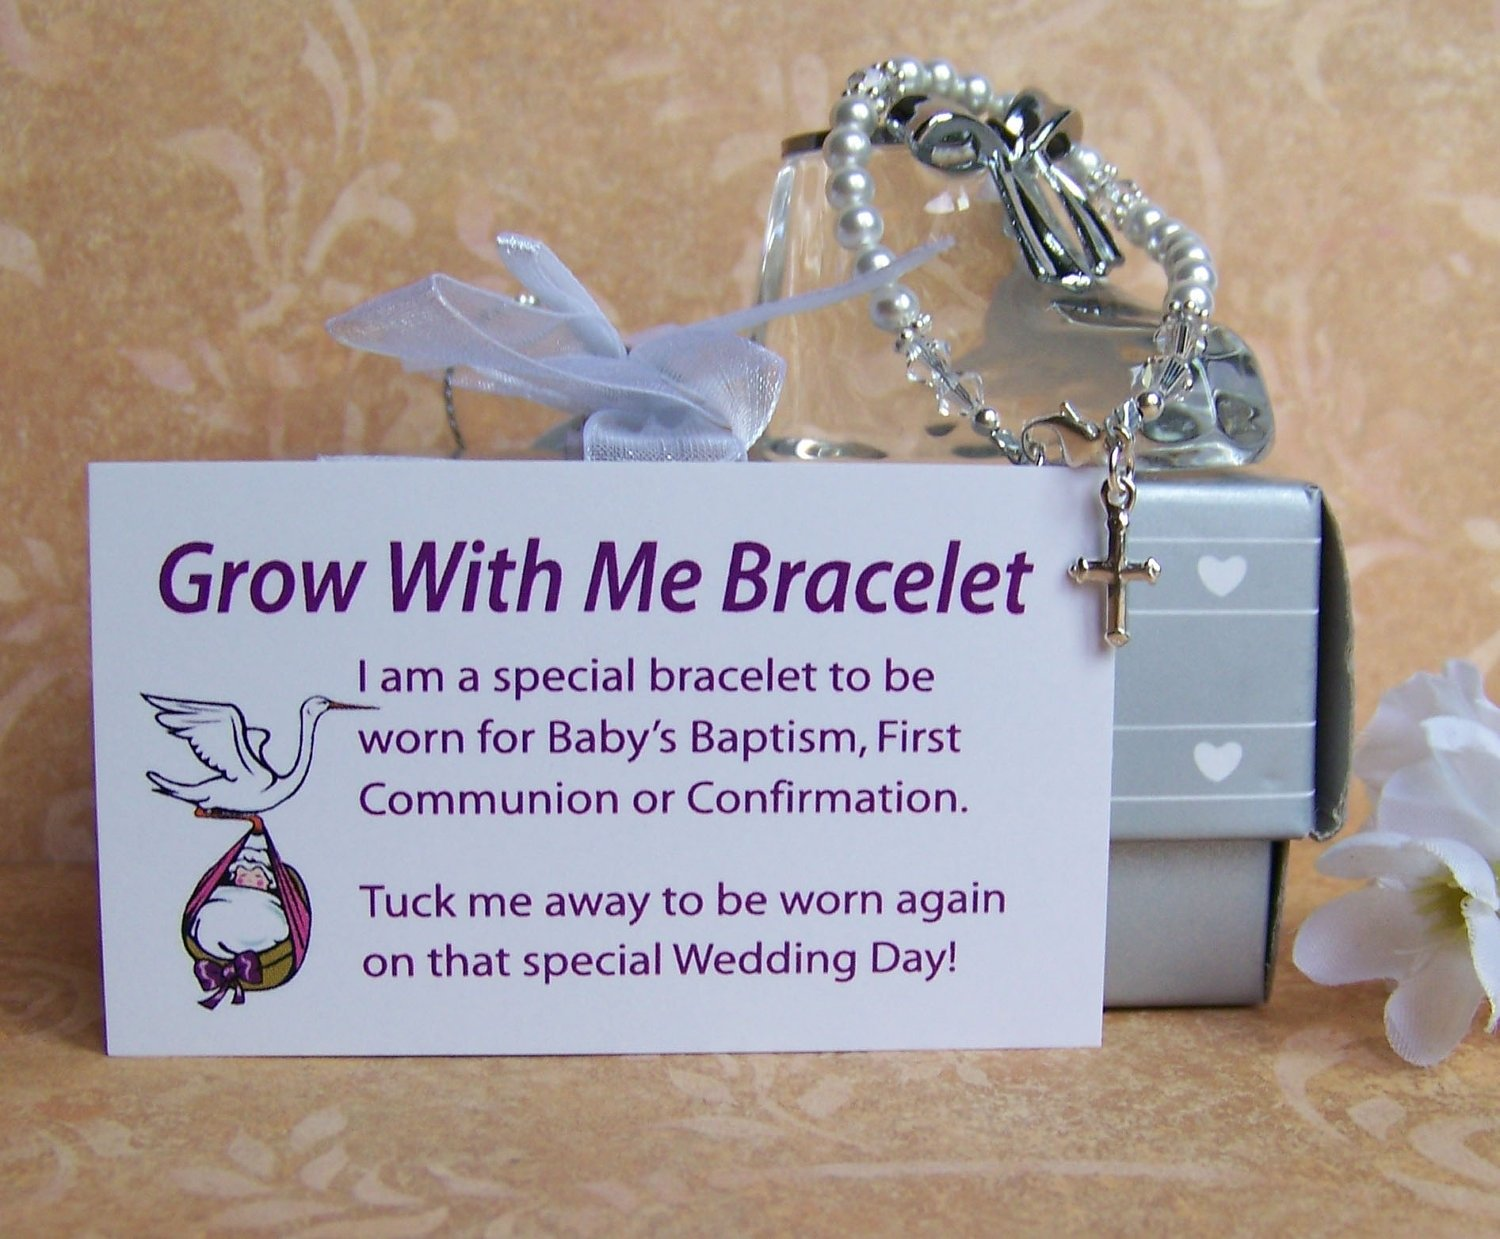 10 Spectacular Baptism Gift Ideas For Girls baby girl baptism bracelet grow with me 38 00 via etsy its a 6